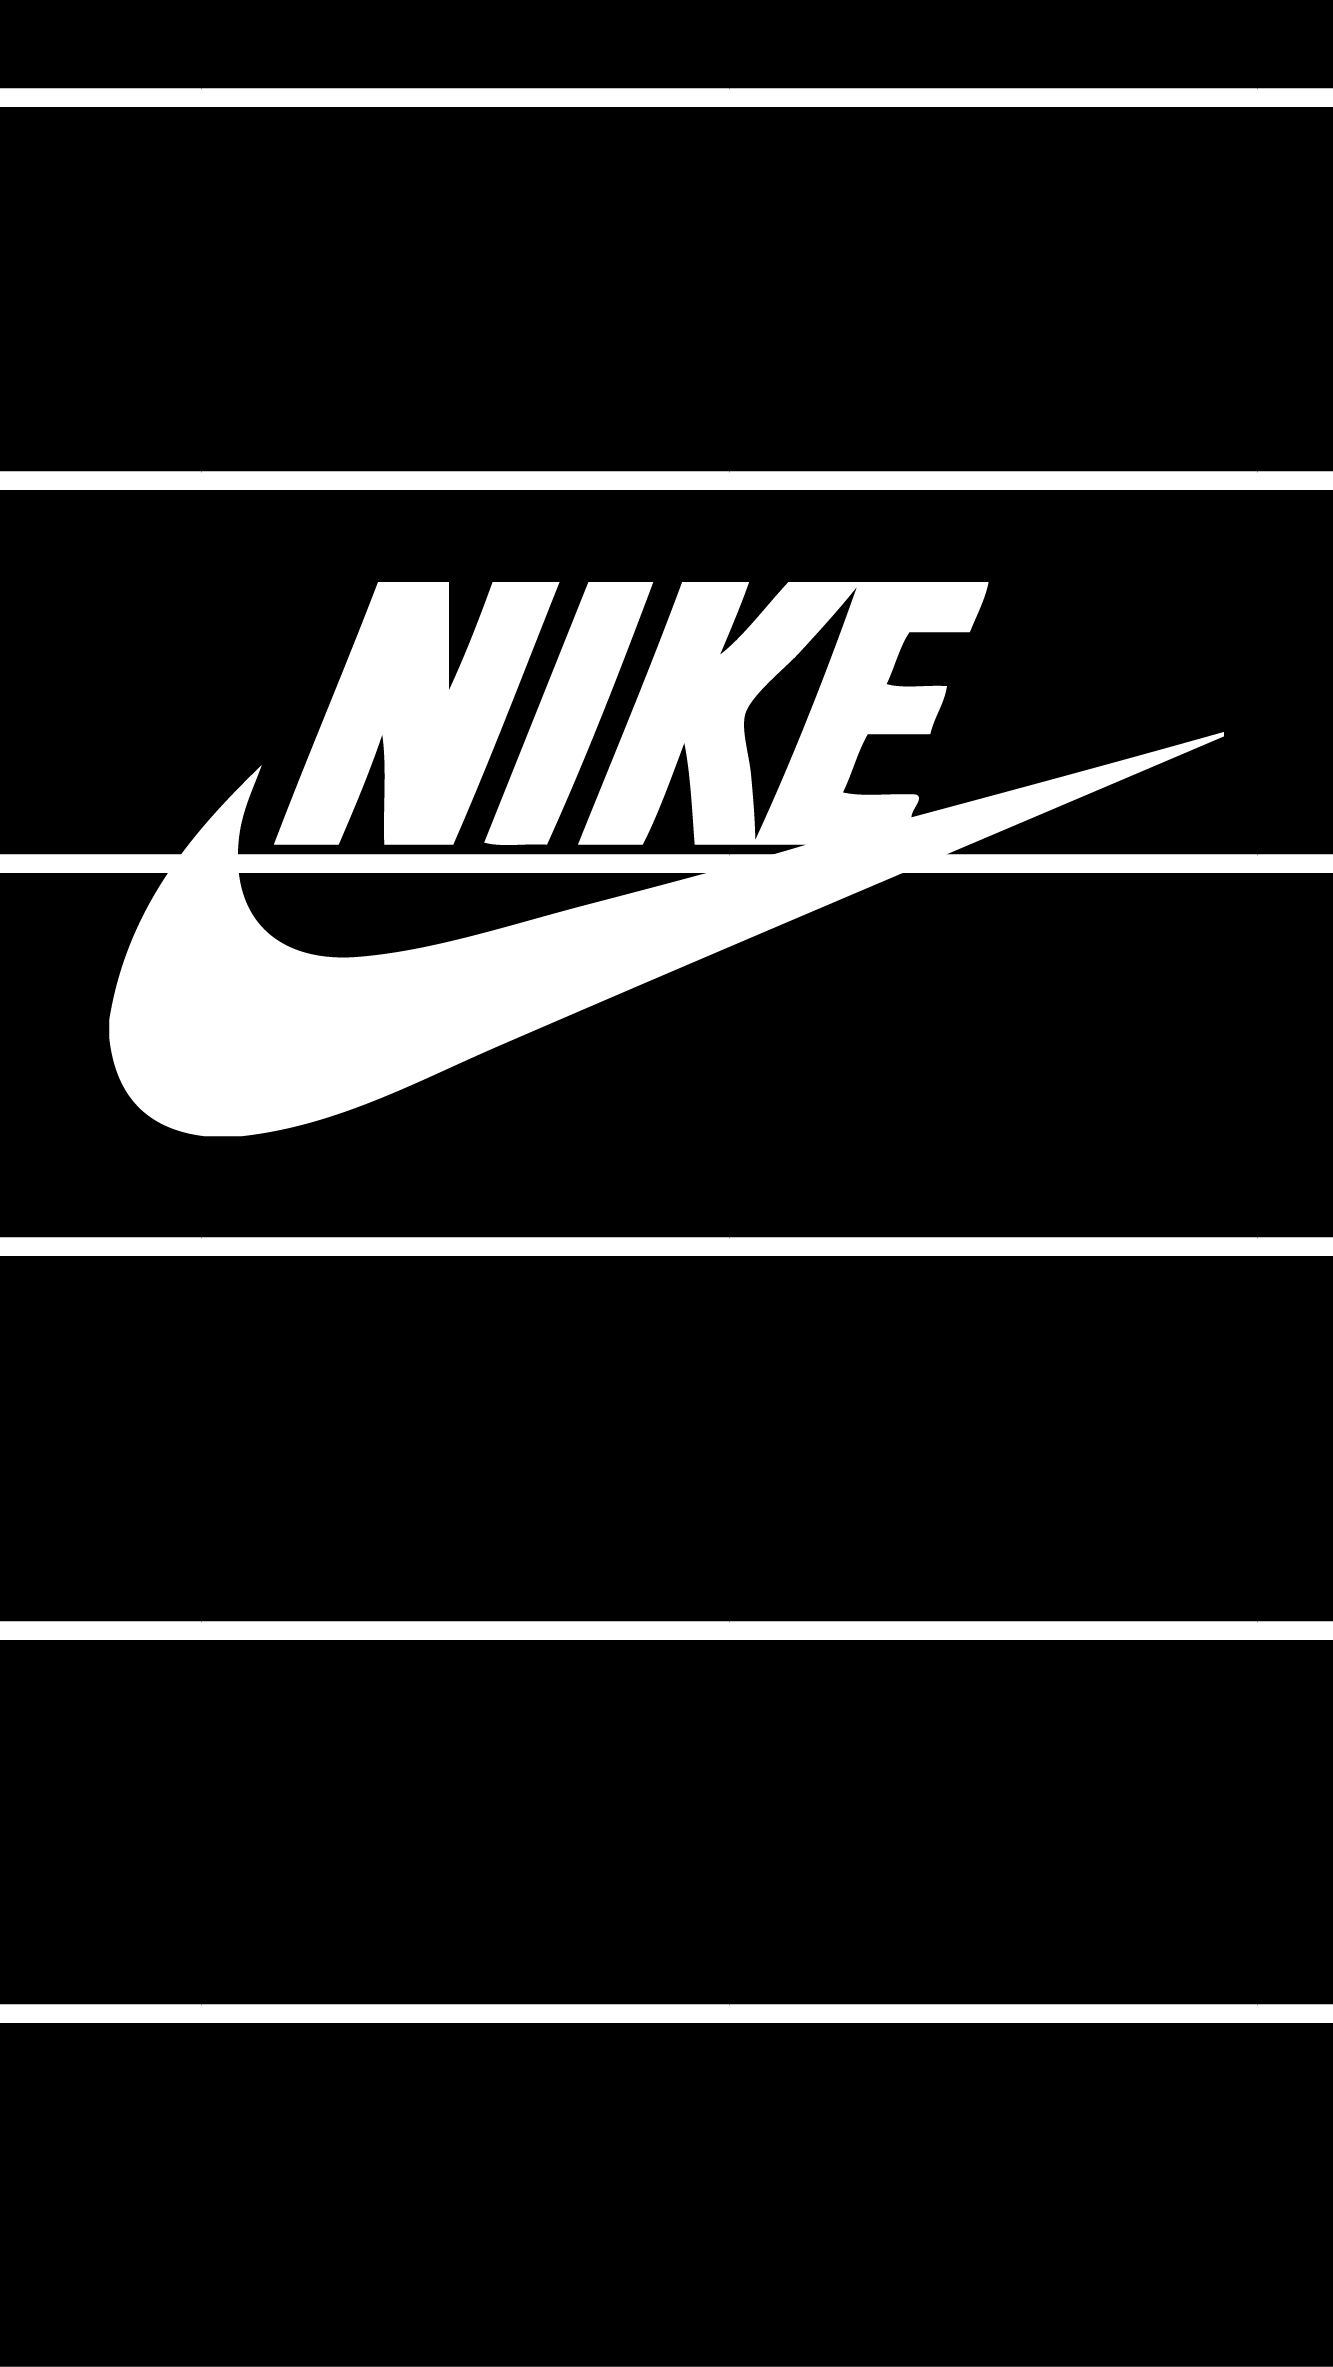 Good Wallpaper Logo Nike - 28d7bcab51037f4da8788556a3a50e09  Trends_51875.jpg